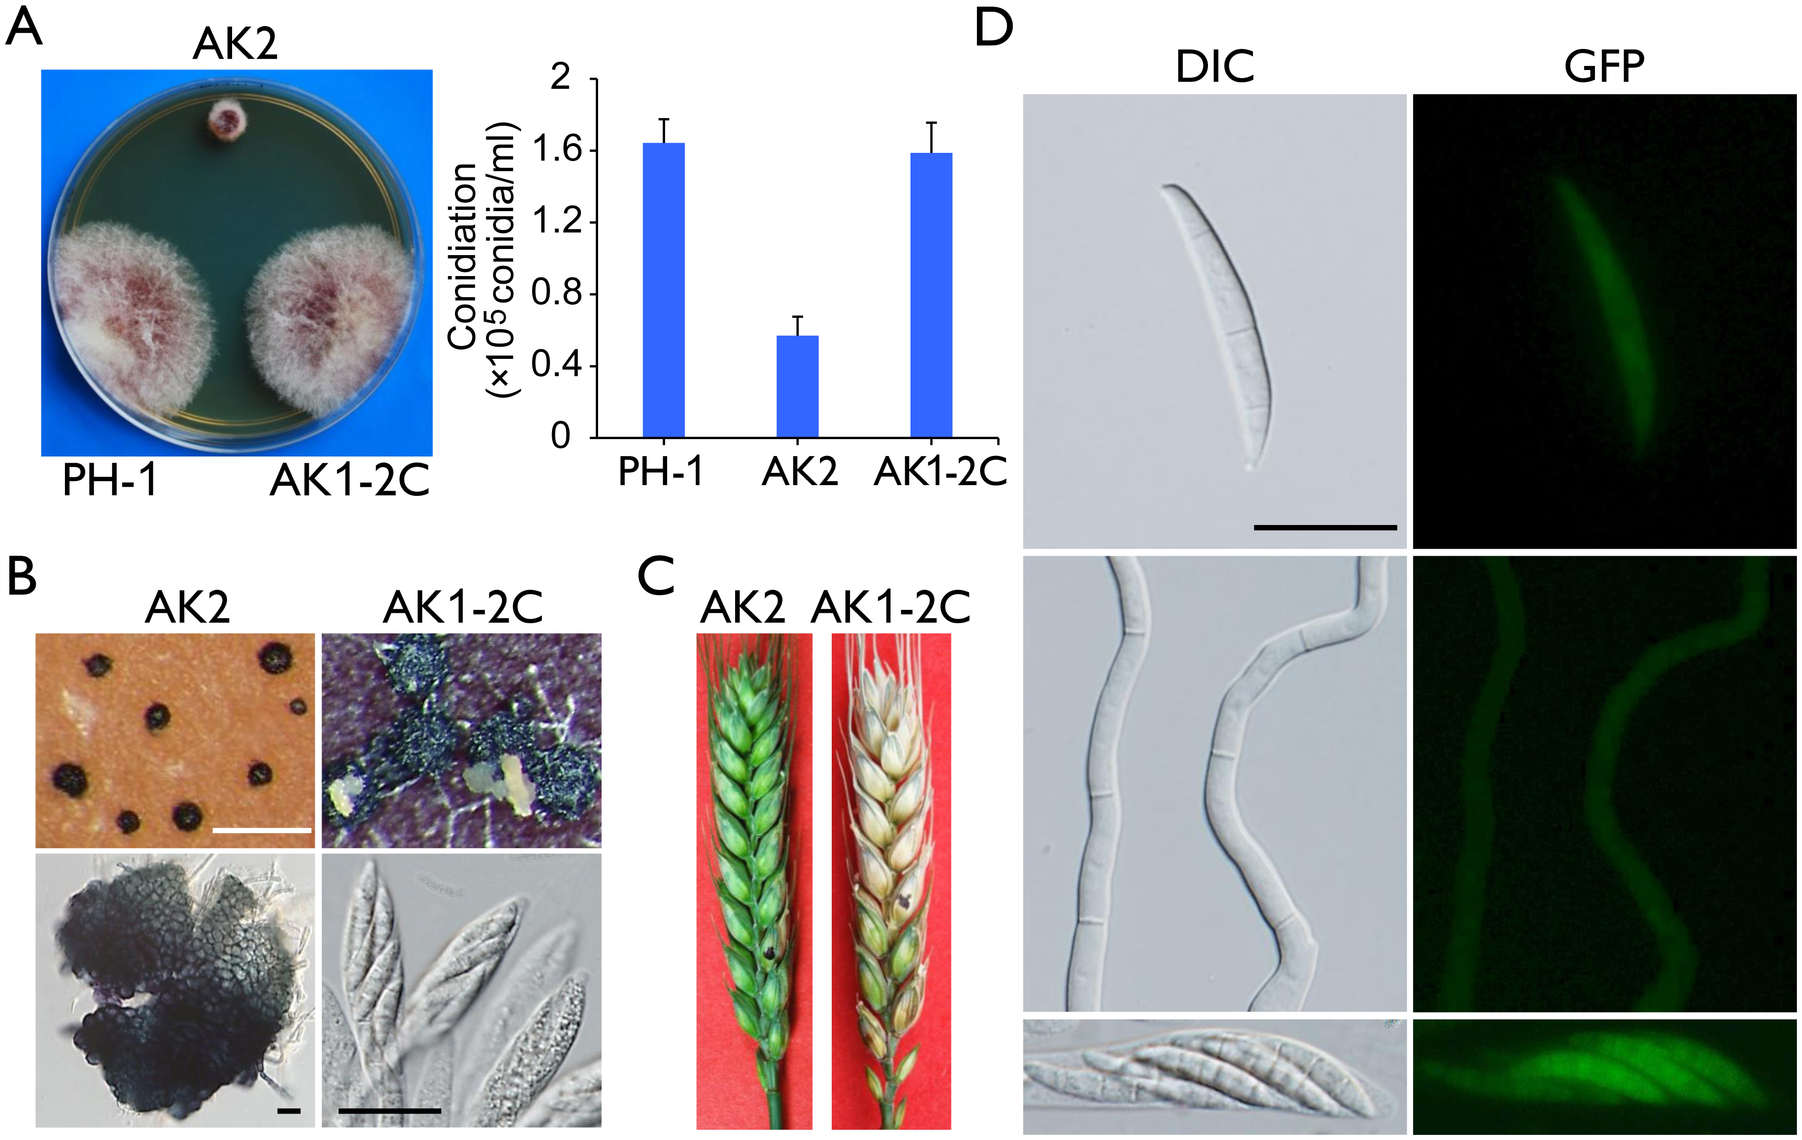 Defects of the <i>Fgcak1</i> mutant in vegetative growth, sexual reproduction, and plant infection and subcellular localization of FgCak1-GFP fusion protein.